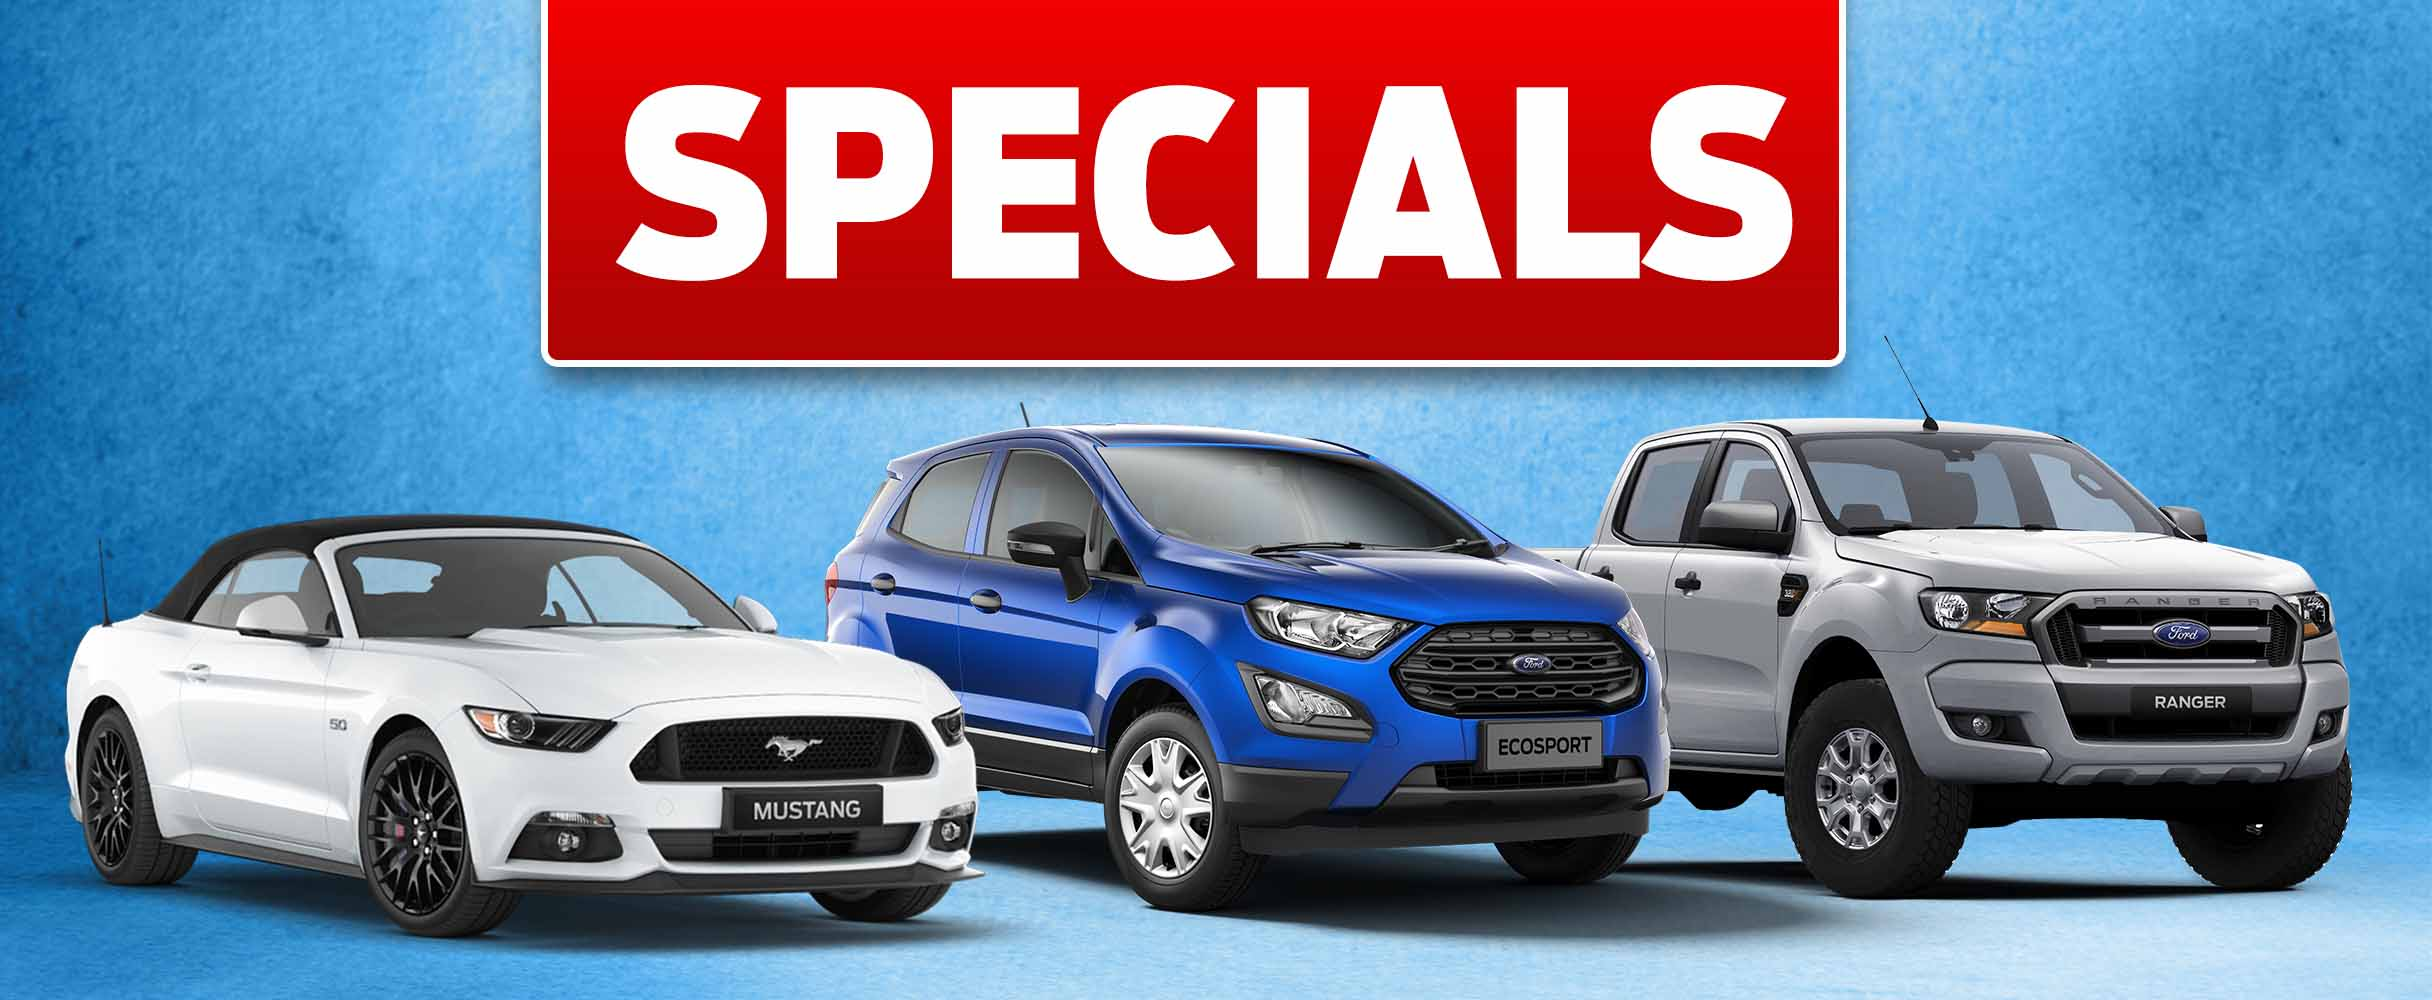 specials at ford bruma